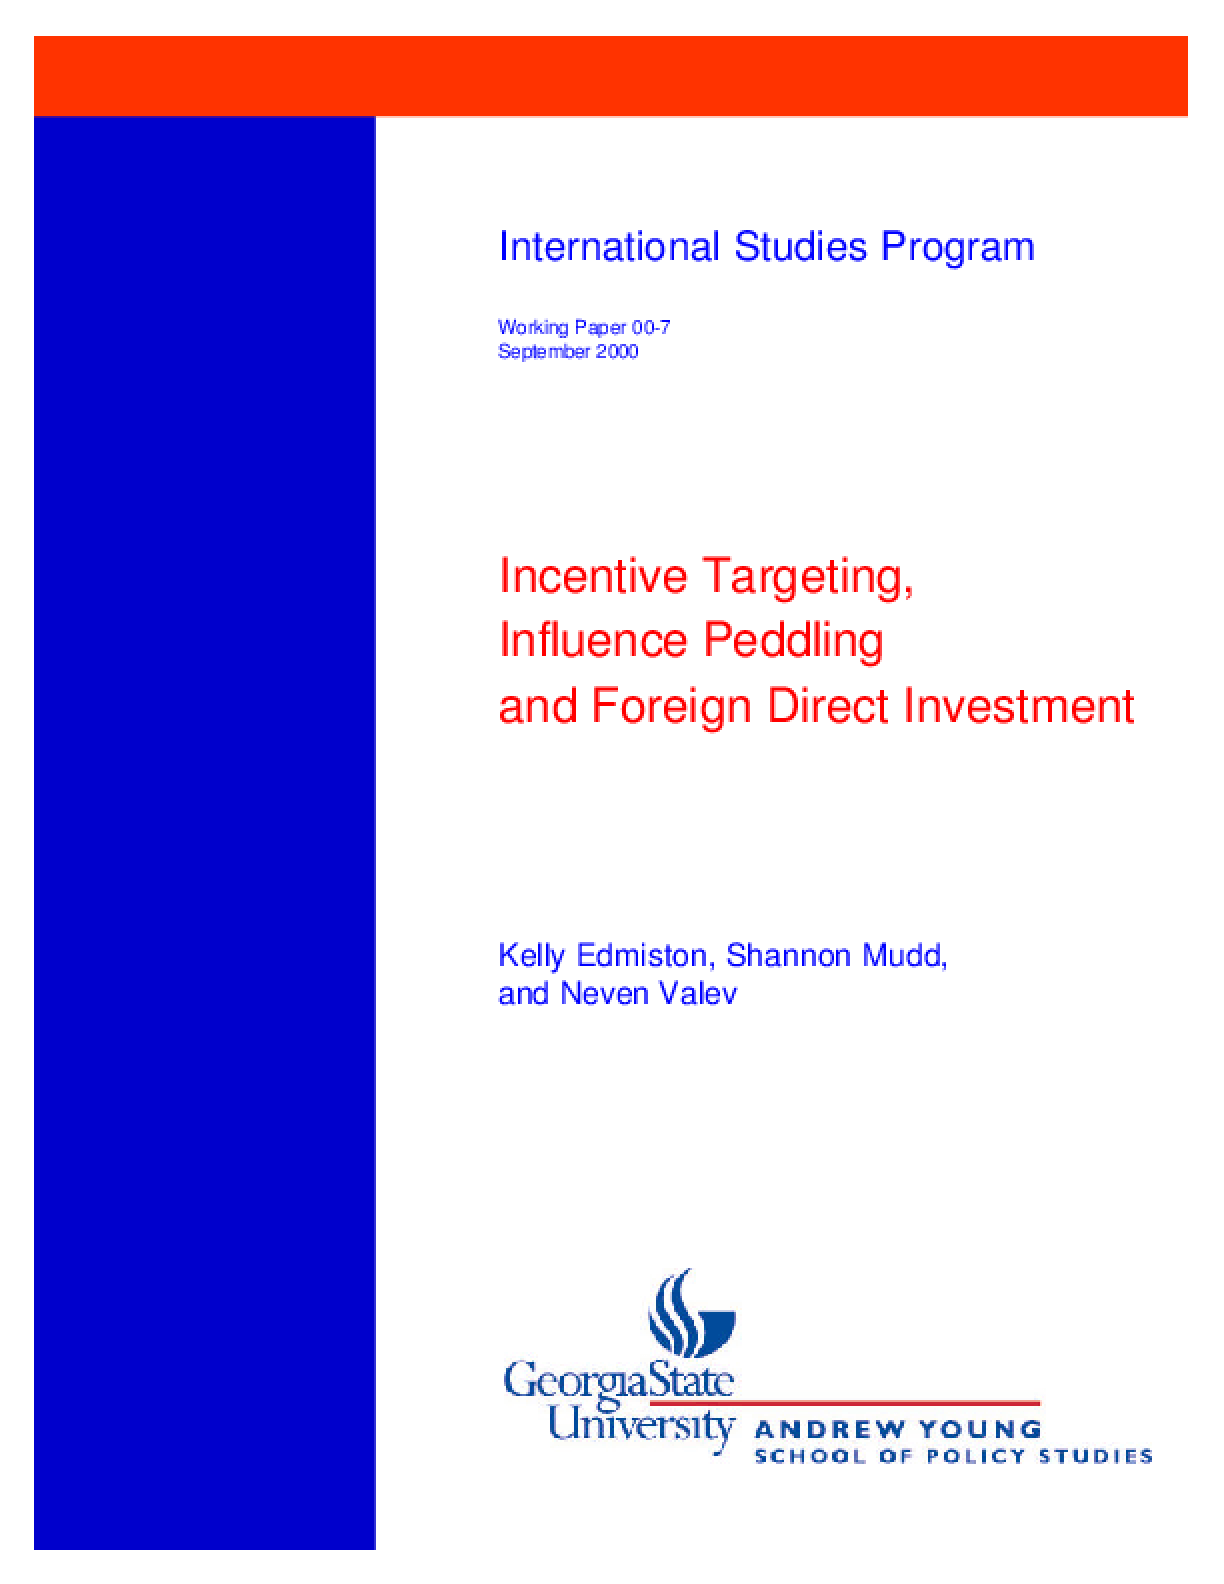 Incentive Targeting, Influence Peddling, and Foreign Direct Investment